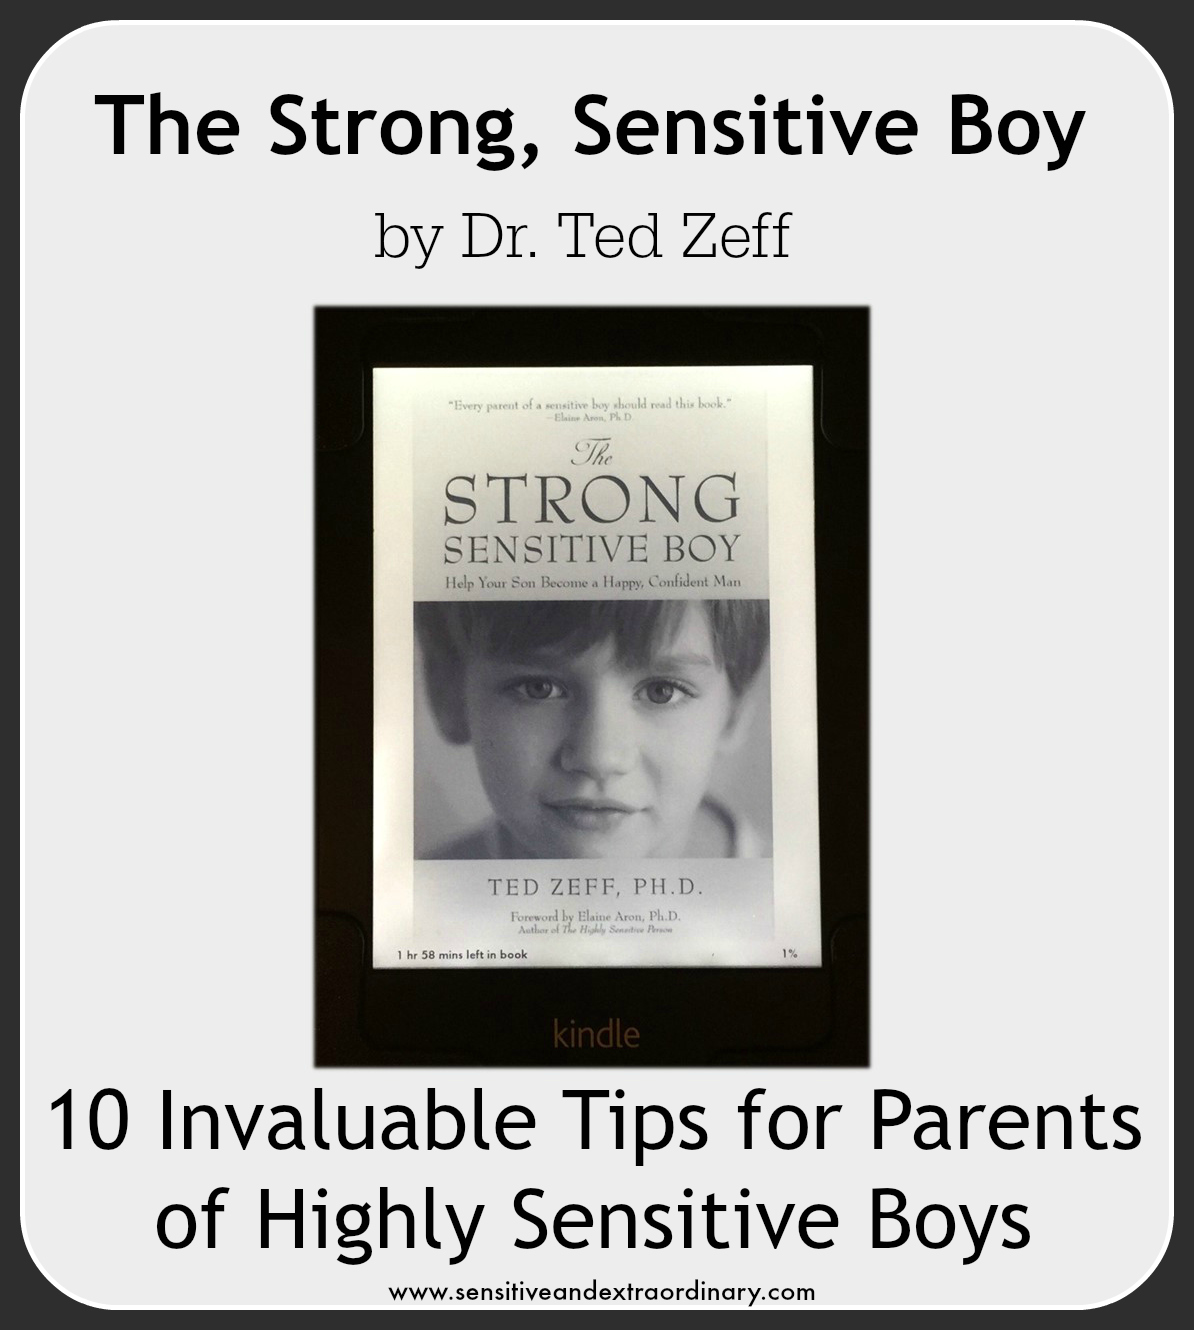 10 Tips For Parents of Highly Sensitive Boys